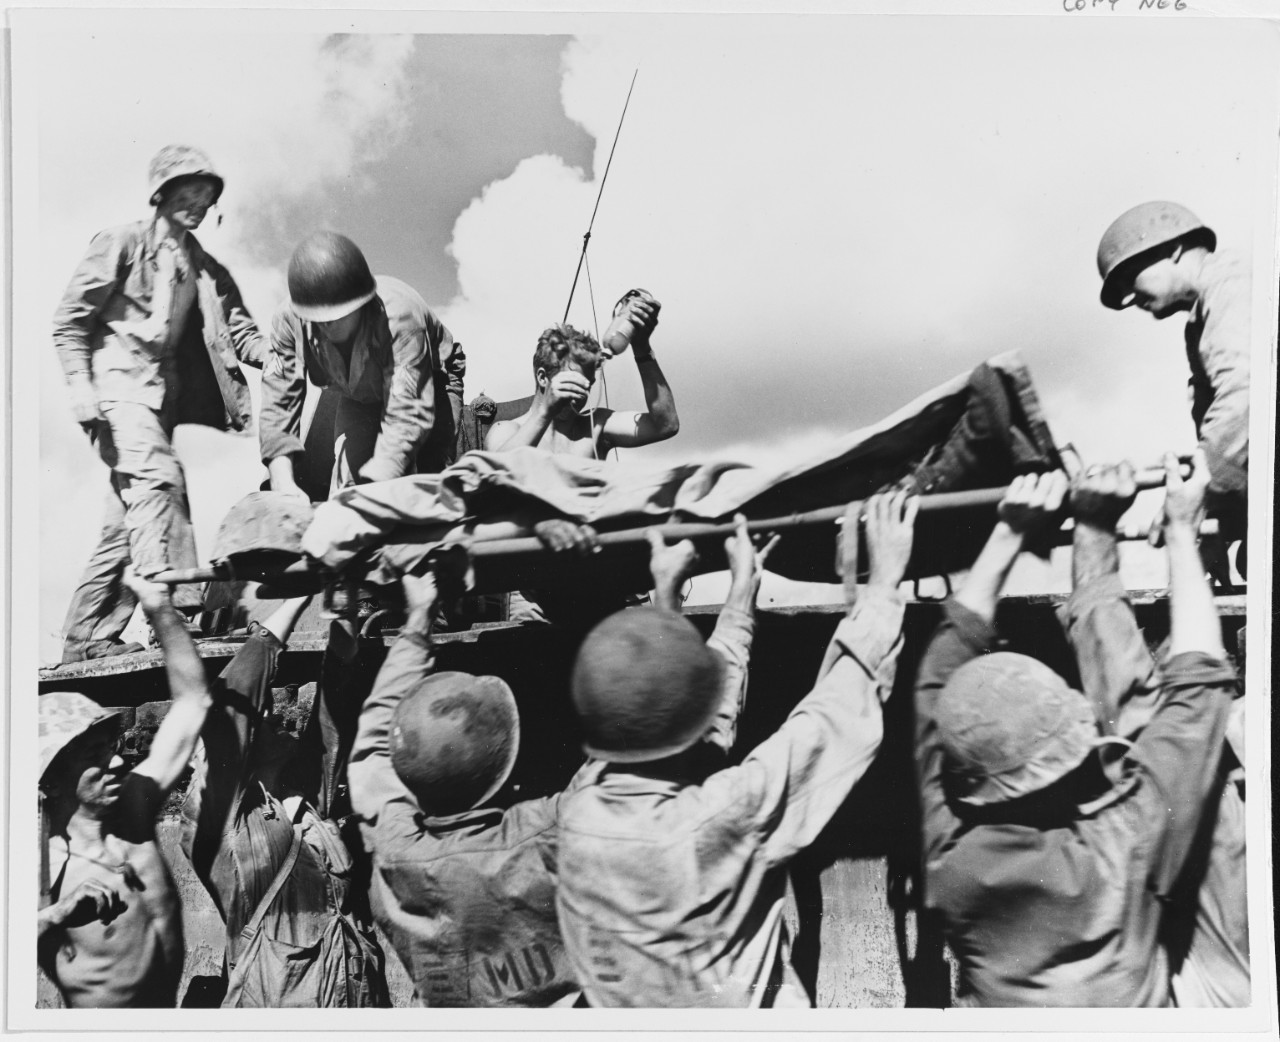 Tinian Invasion, 1944, Evacuation of wounded Marine